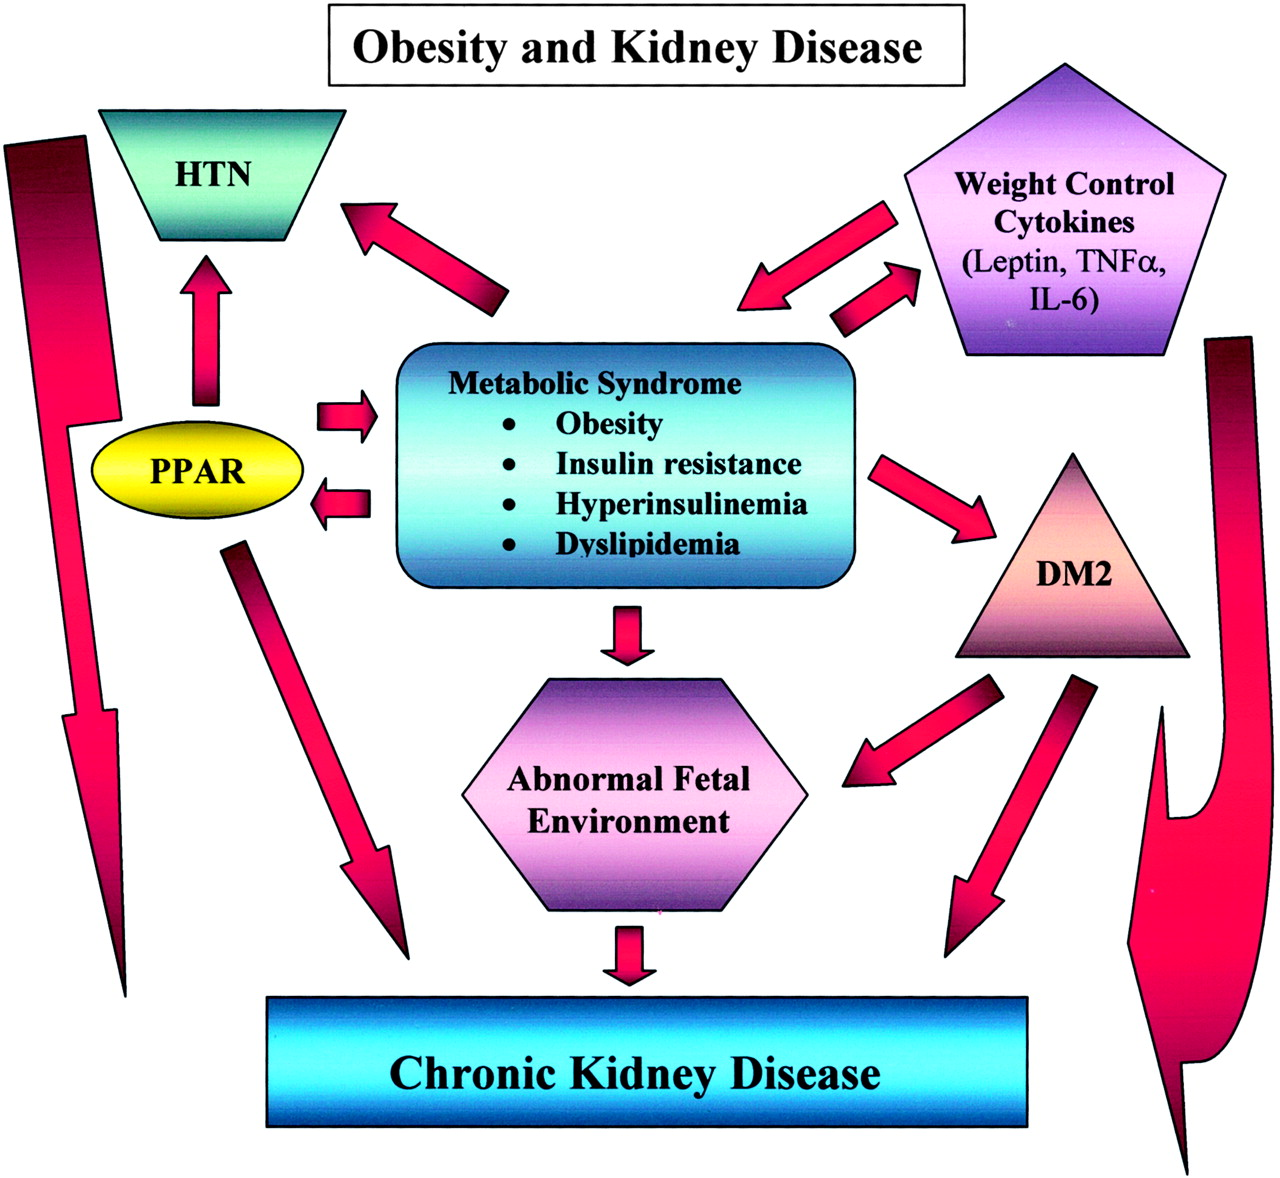 hight resolution of overview obesity what does it have to do with kidney disease american society of nephrology